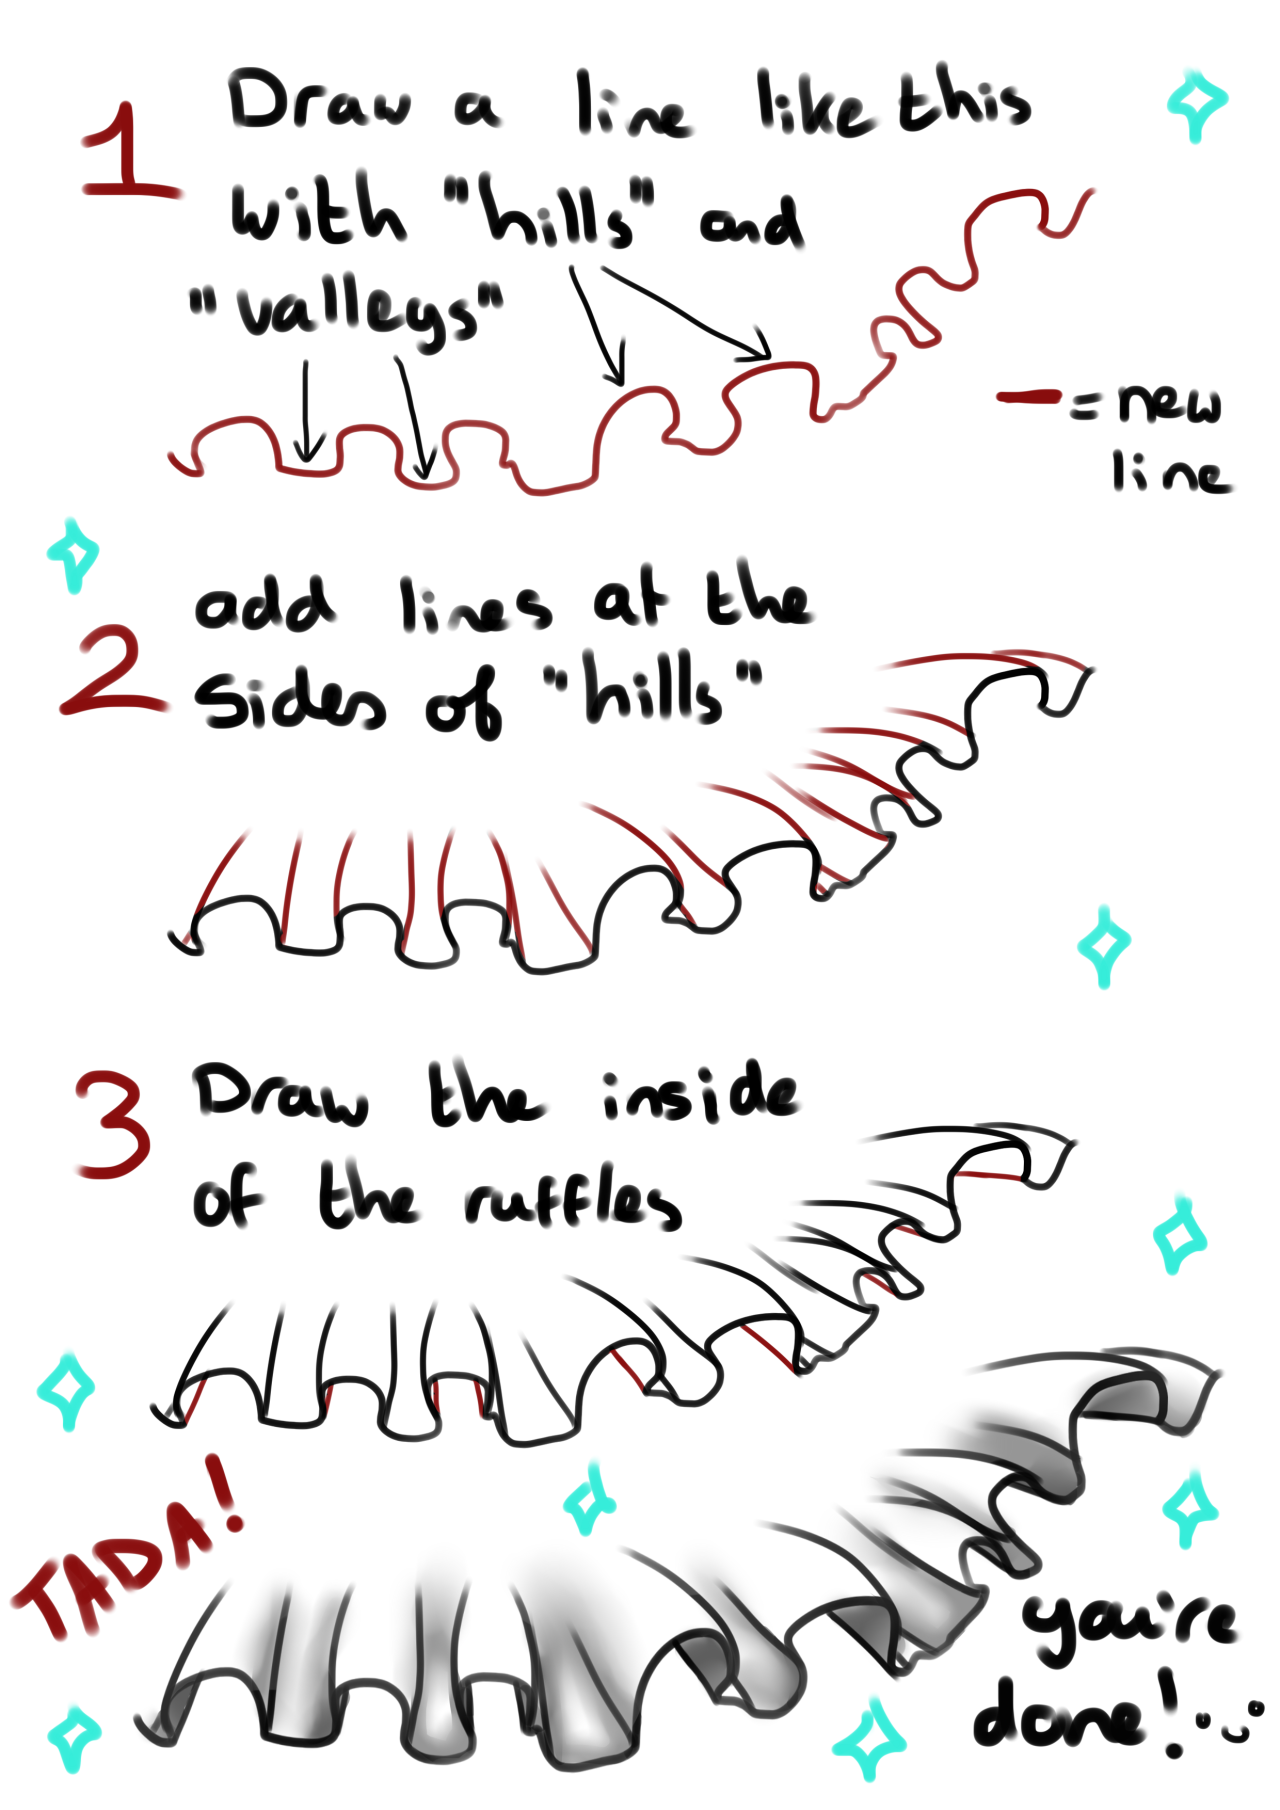 €� How To Draw Ruffles  By Icanreachthestars (requested By Ilovetodraw2) €�